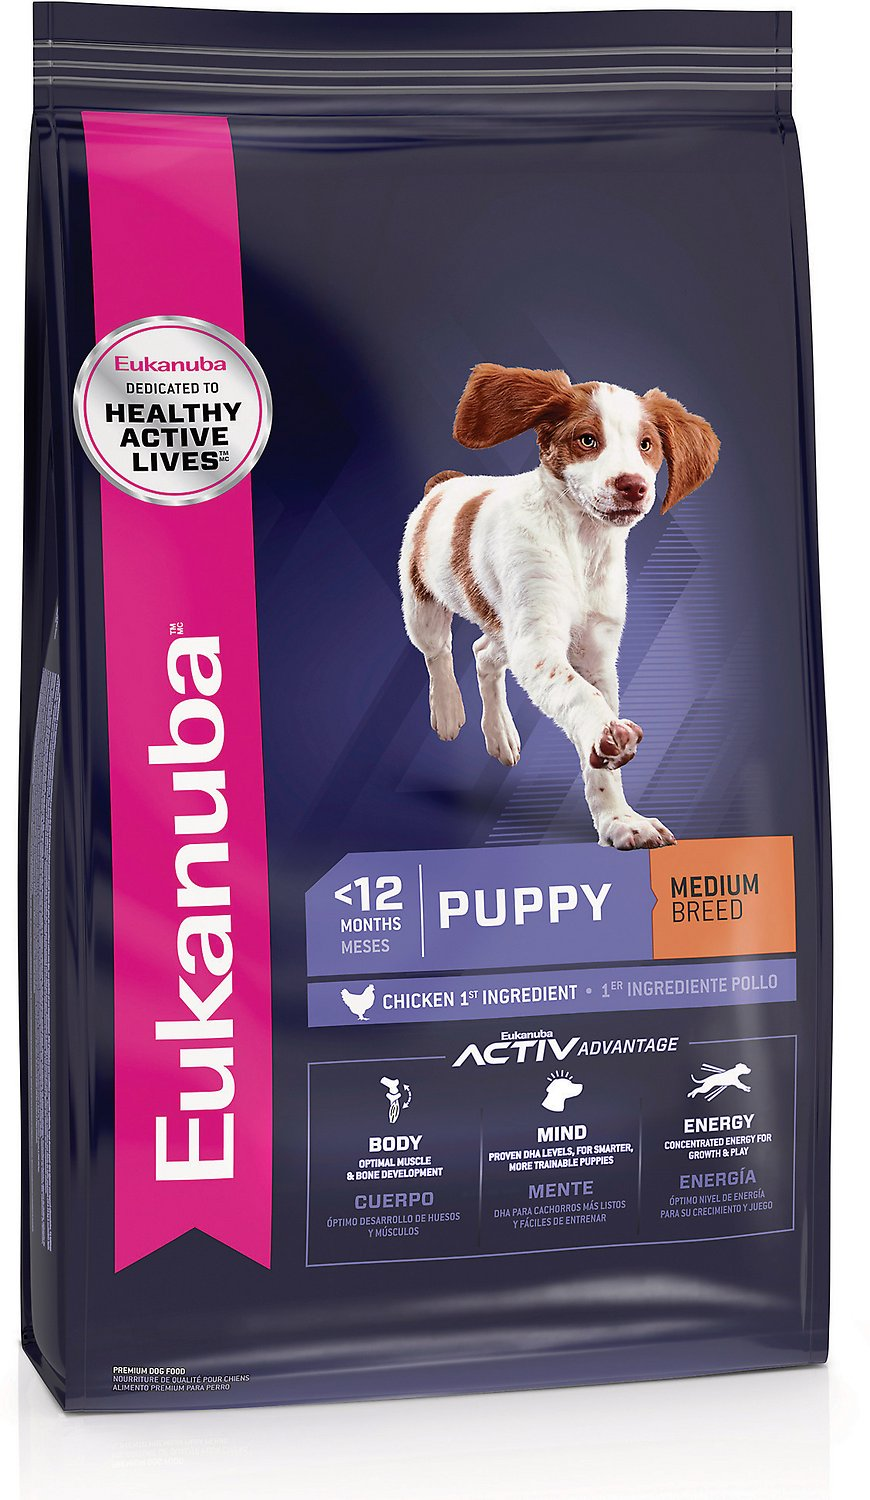 Eukanuba Puppy Food >> Eukanuba Puppy Chicken Formula Dry Dog Food 33 Lb Bag Chewy Com